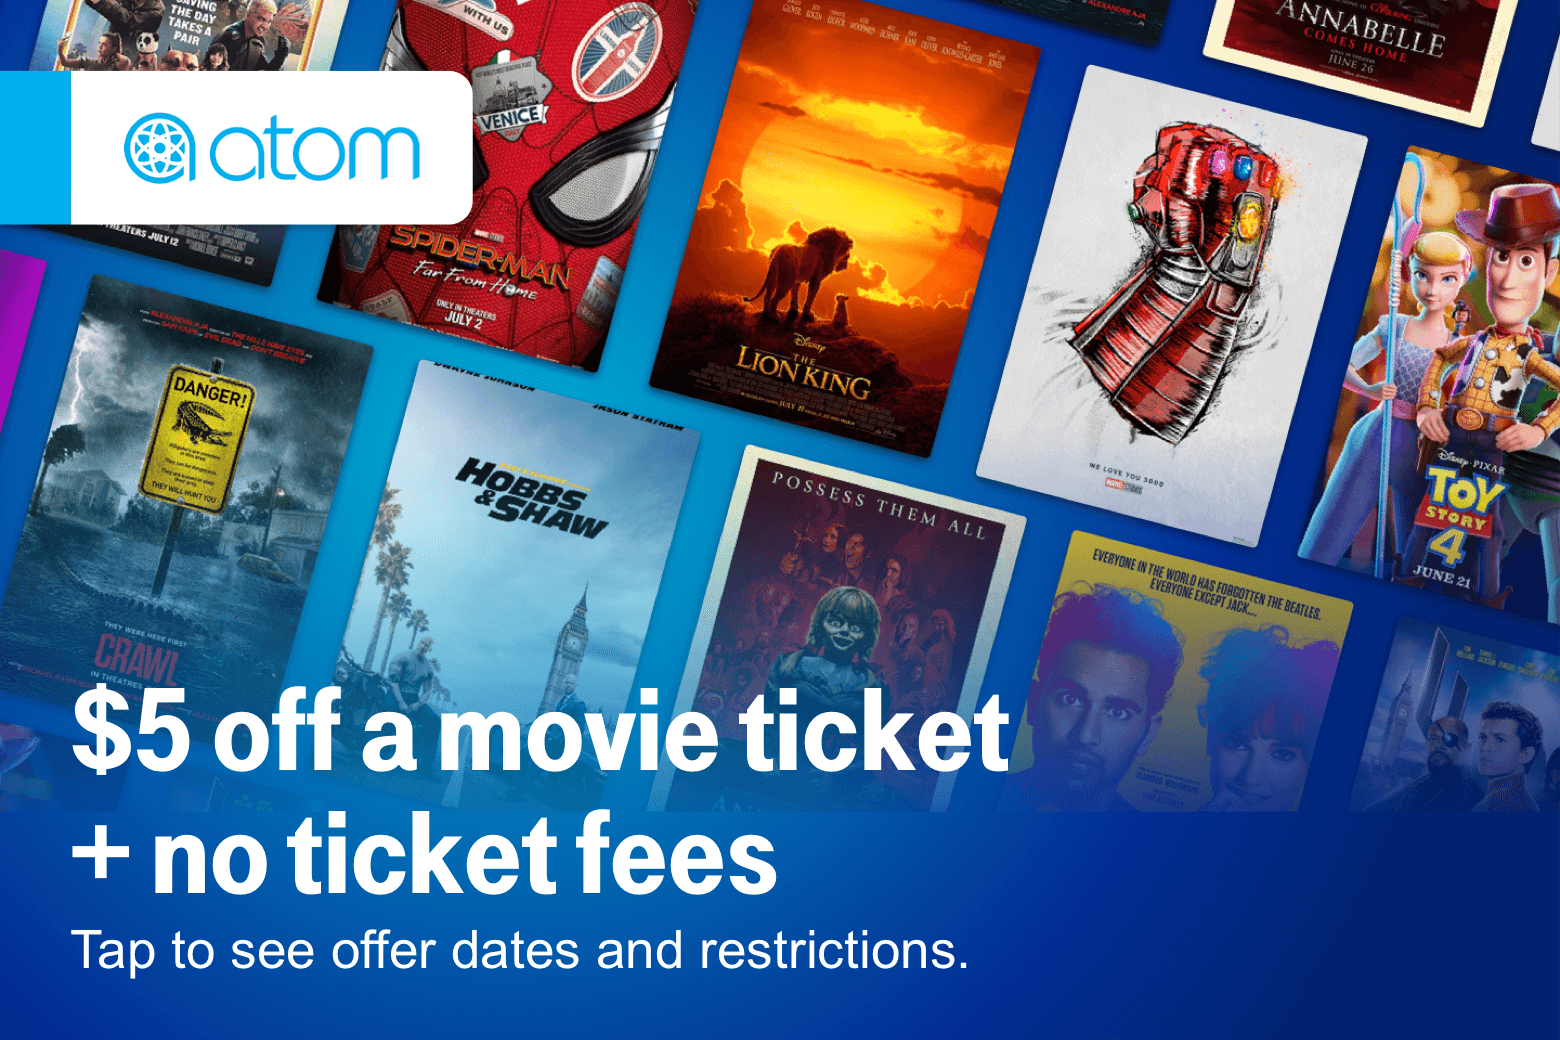 Atom. $5 off a movie ticket + no ticket fees. Tap to see offer dates and restrictions.